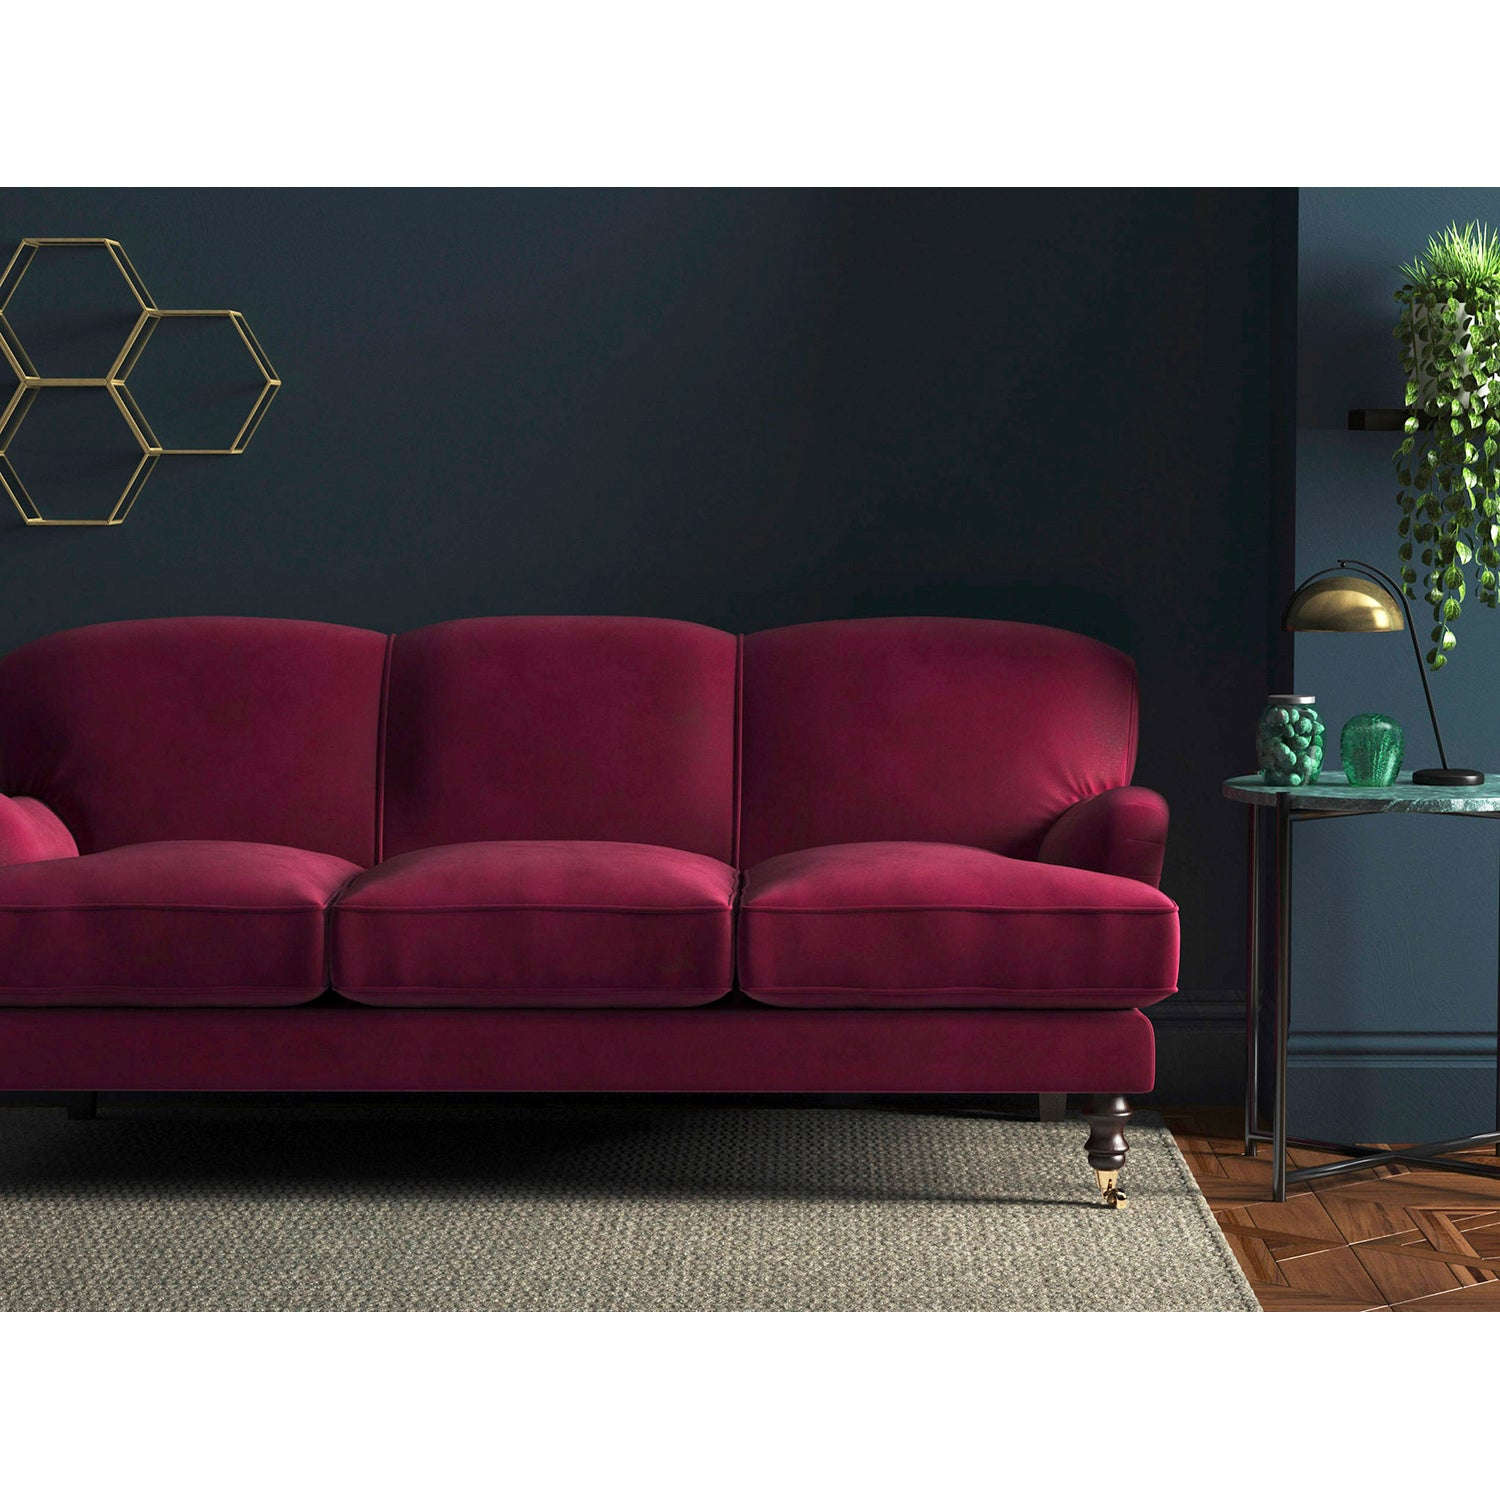 Sofa in a luxury berry coloured velvet upholstery fabric with a stain resistant finish